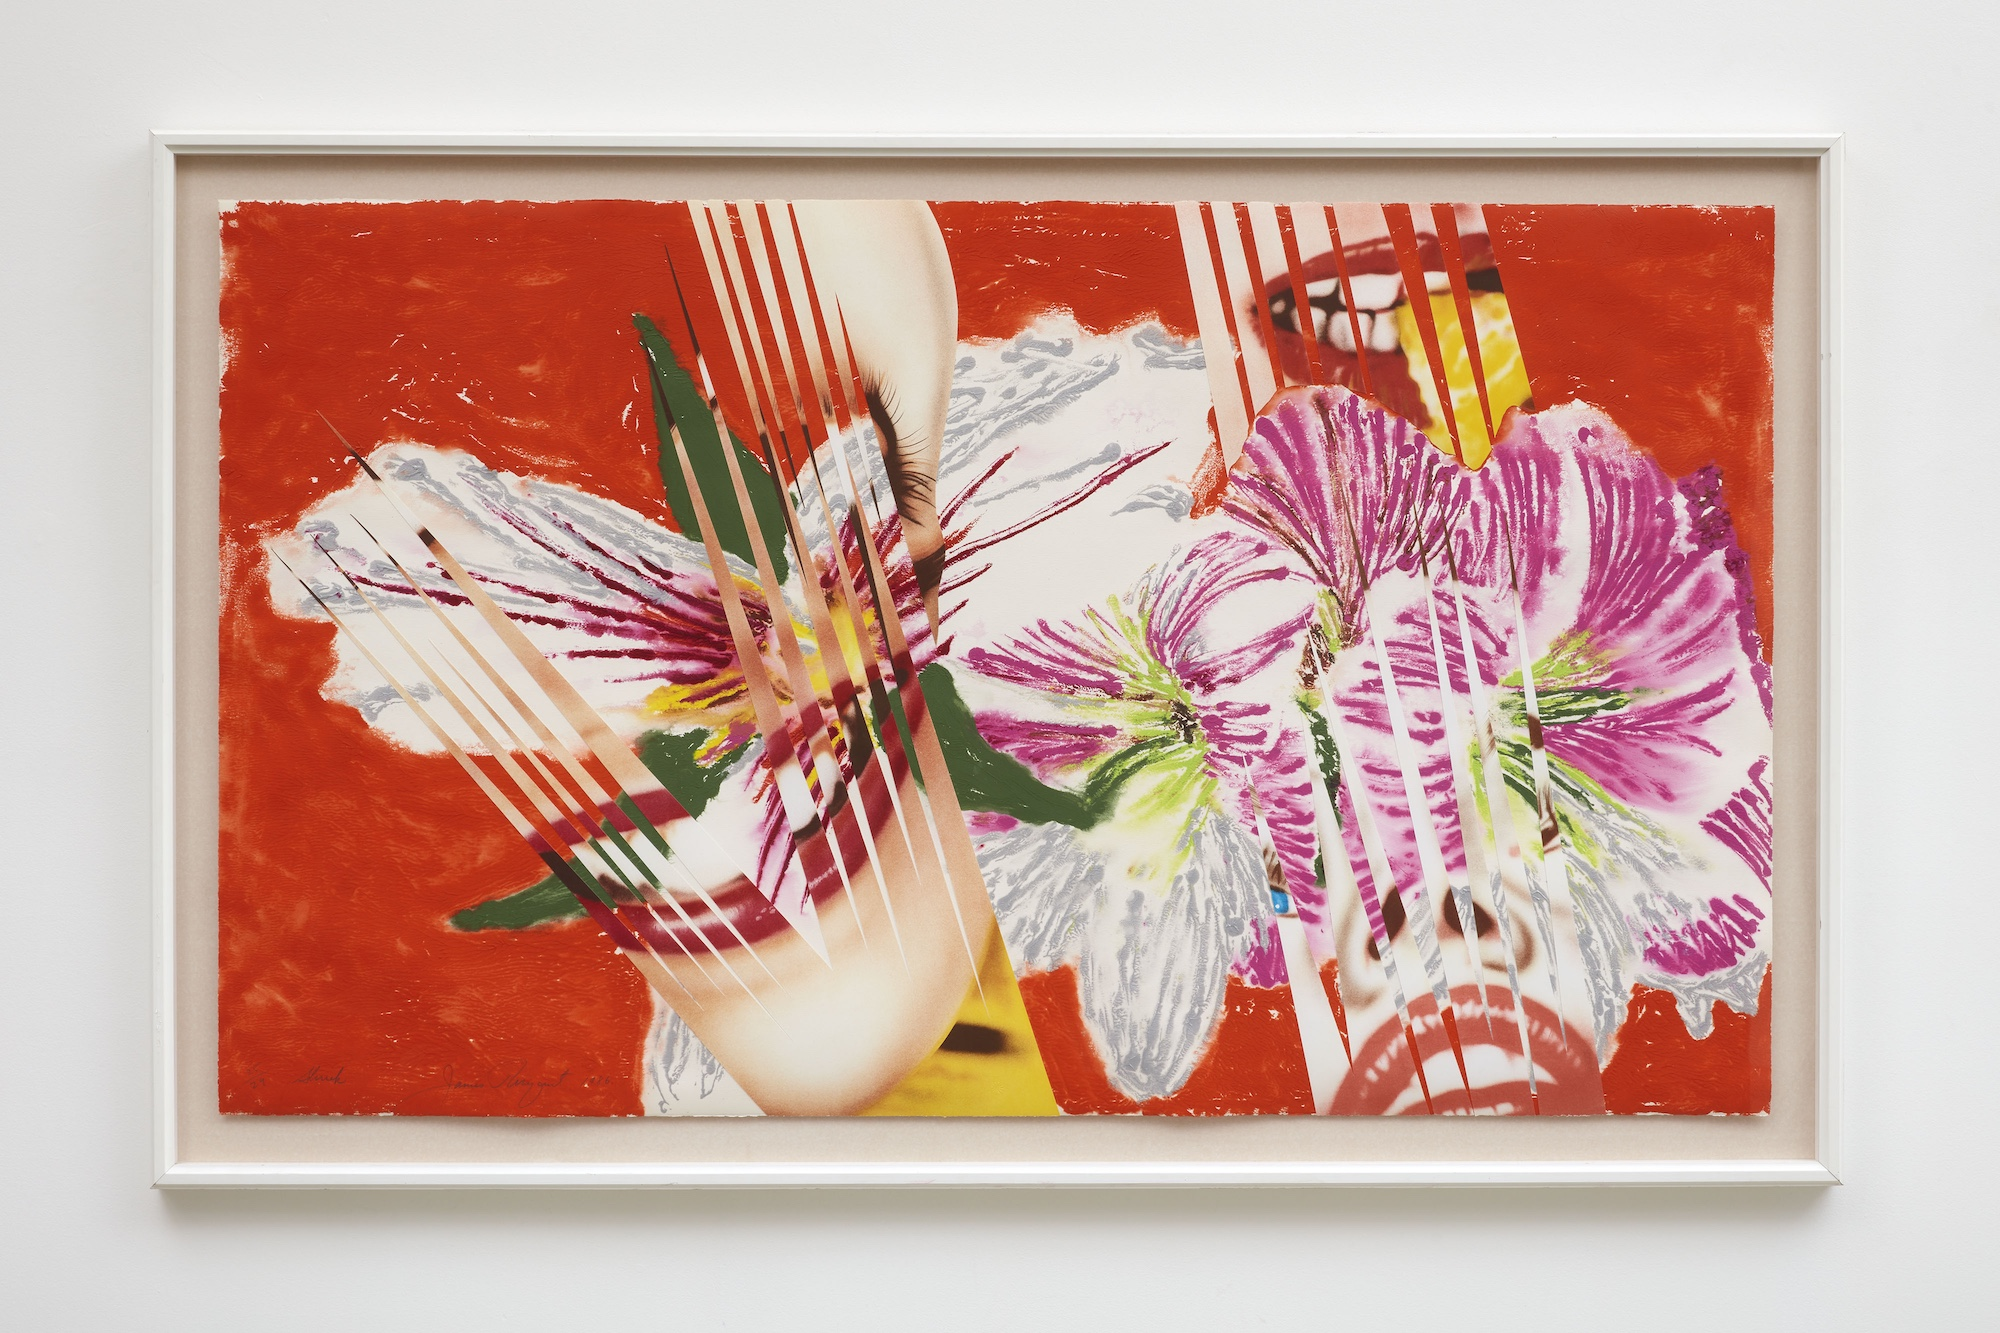 James Rosenquist Shriek